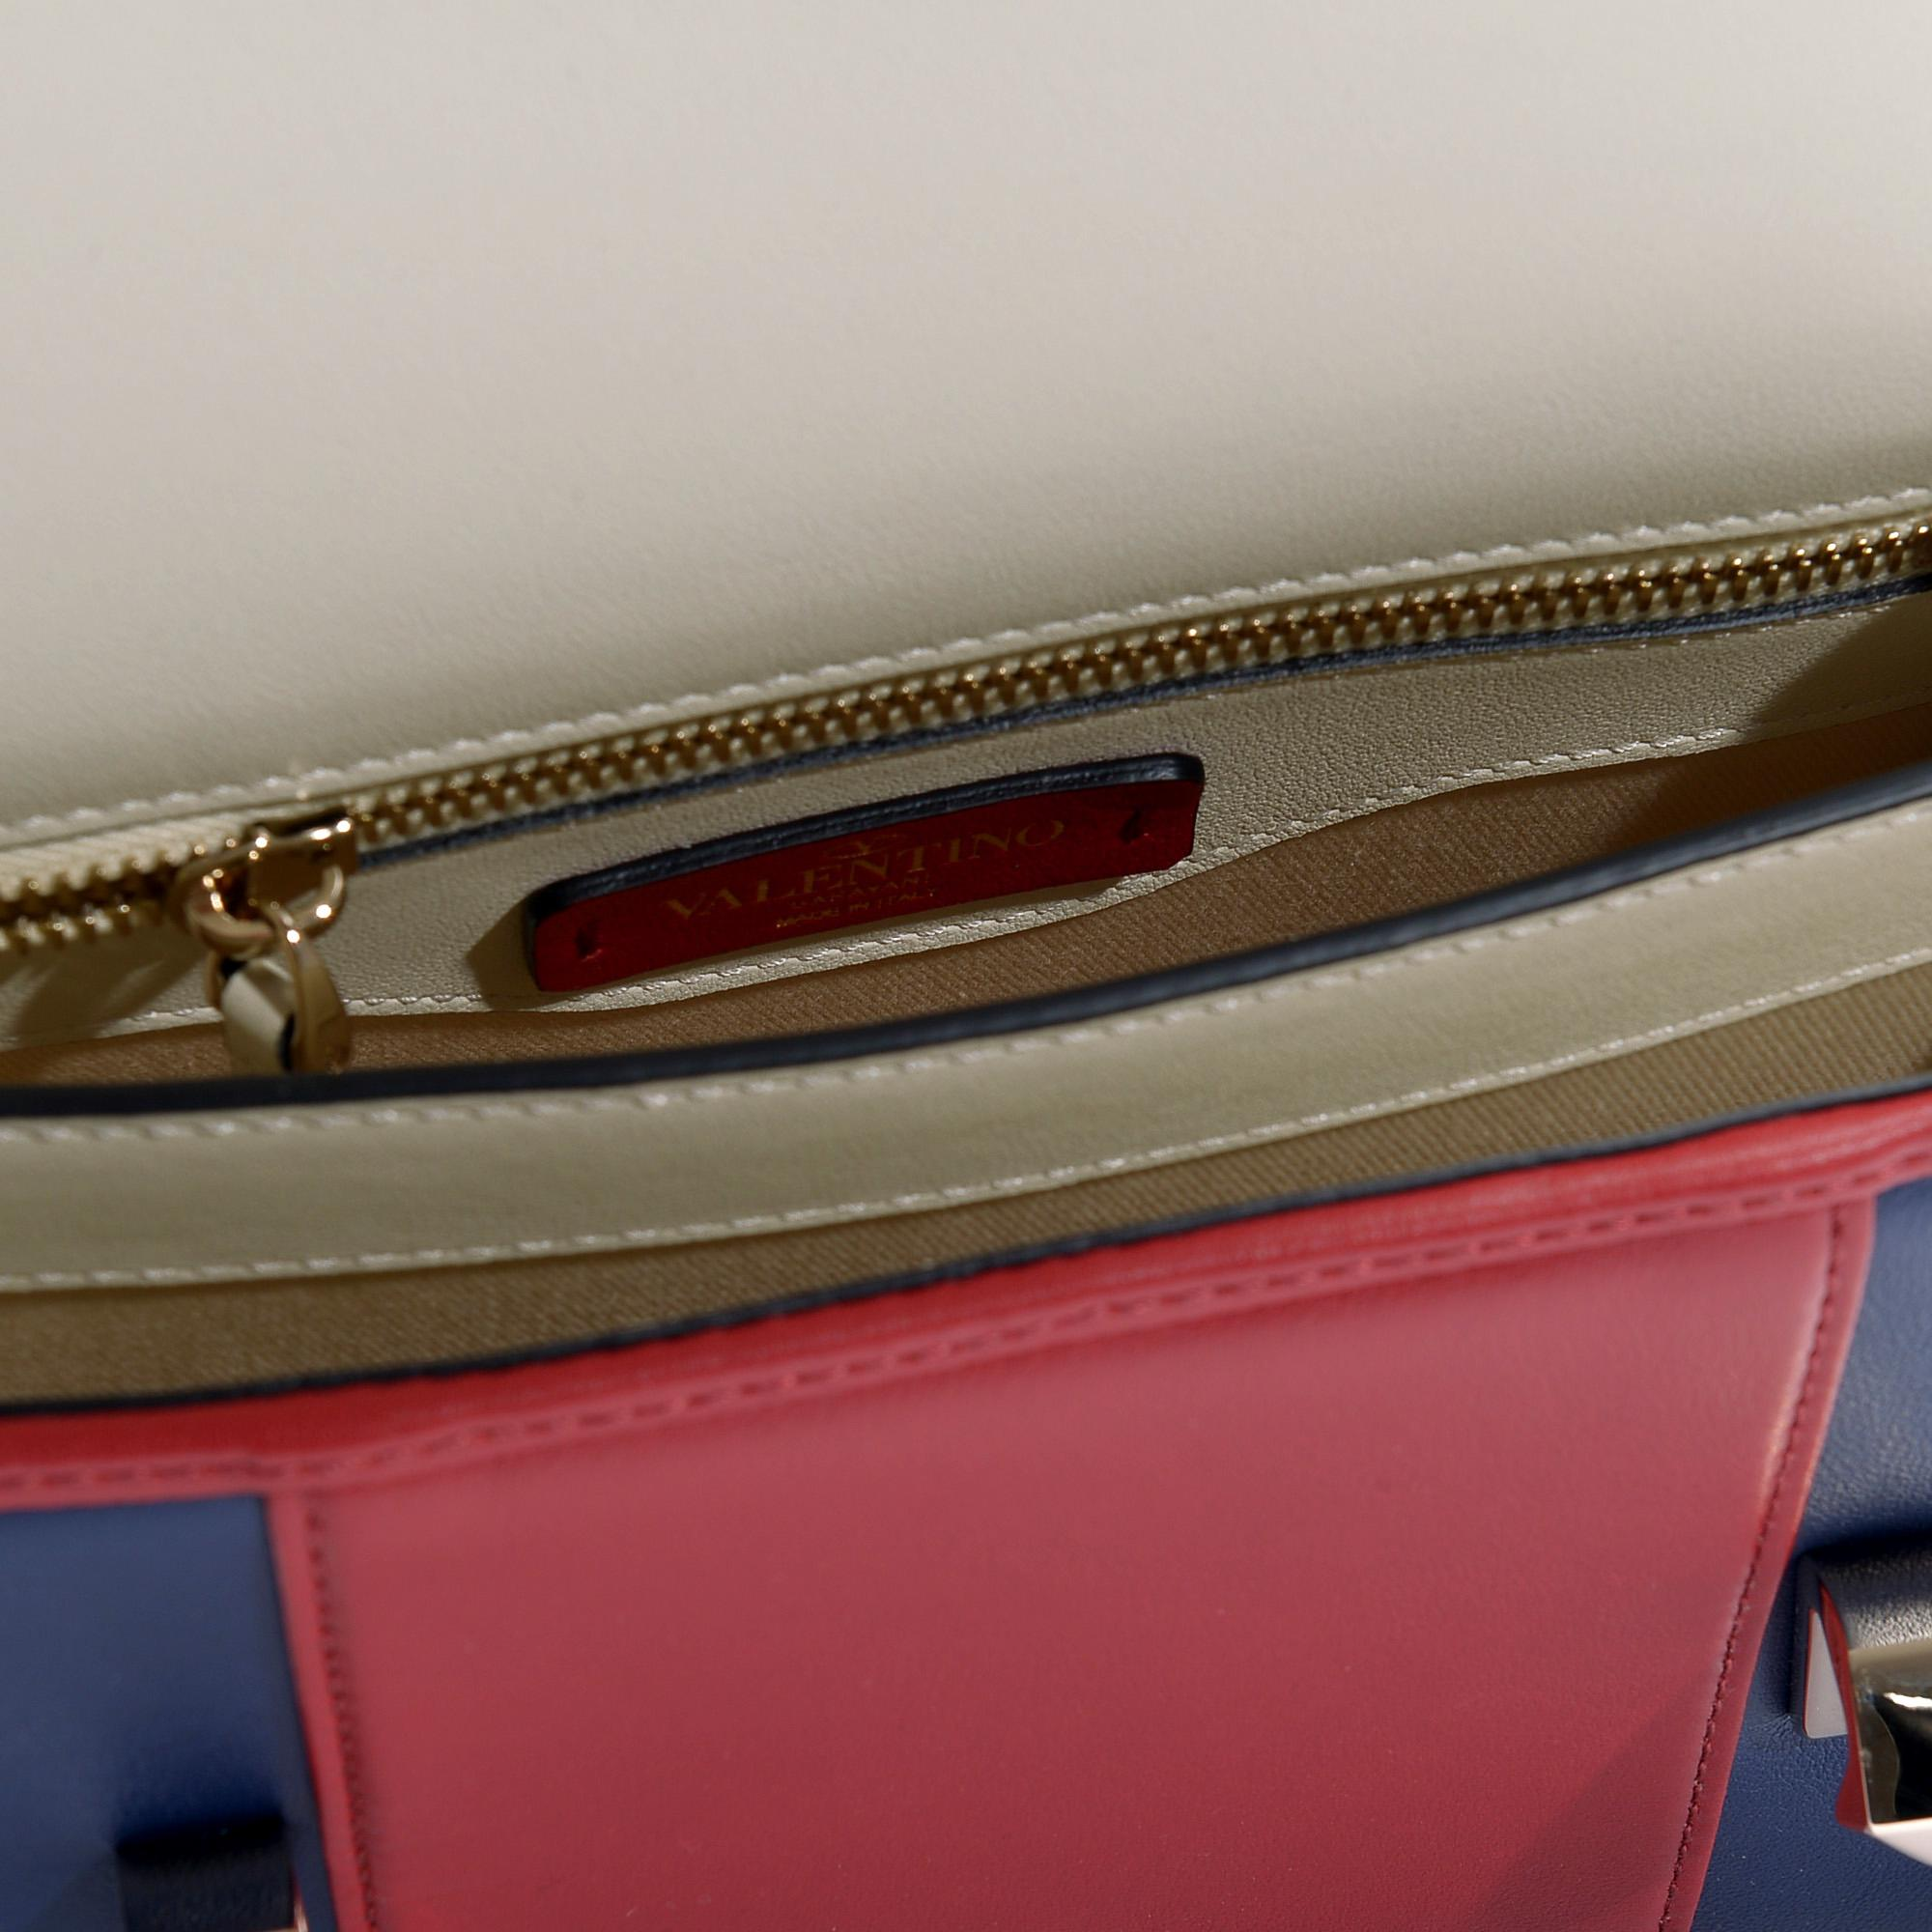 10c2bfefd8aa valentino-Multicoloured-Uptown-Small-Shoulder-Bag-In-Ivory-Red-And-Blue-Grained-Calfskin.jpeg